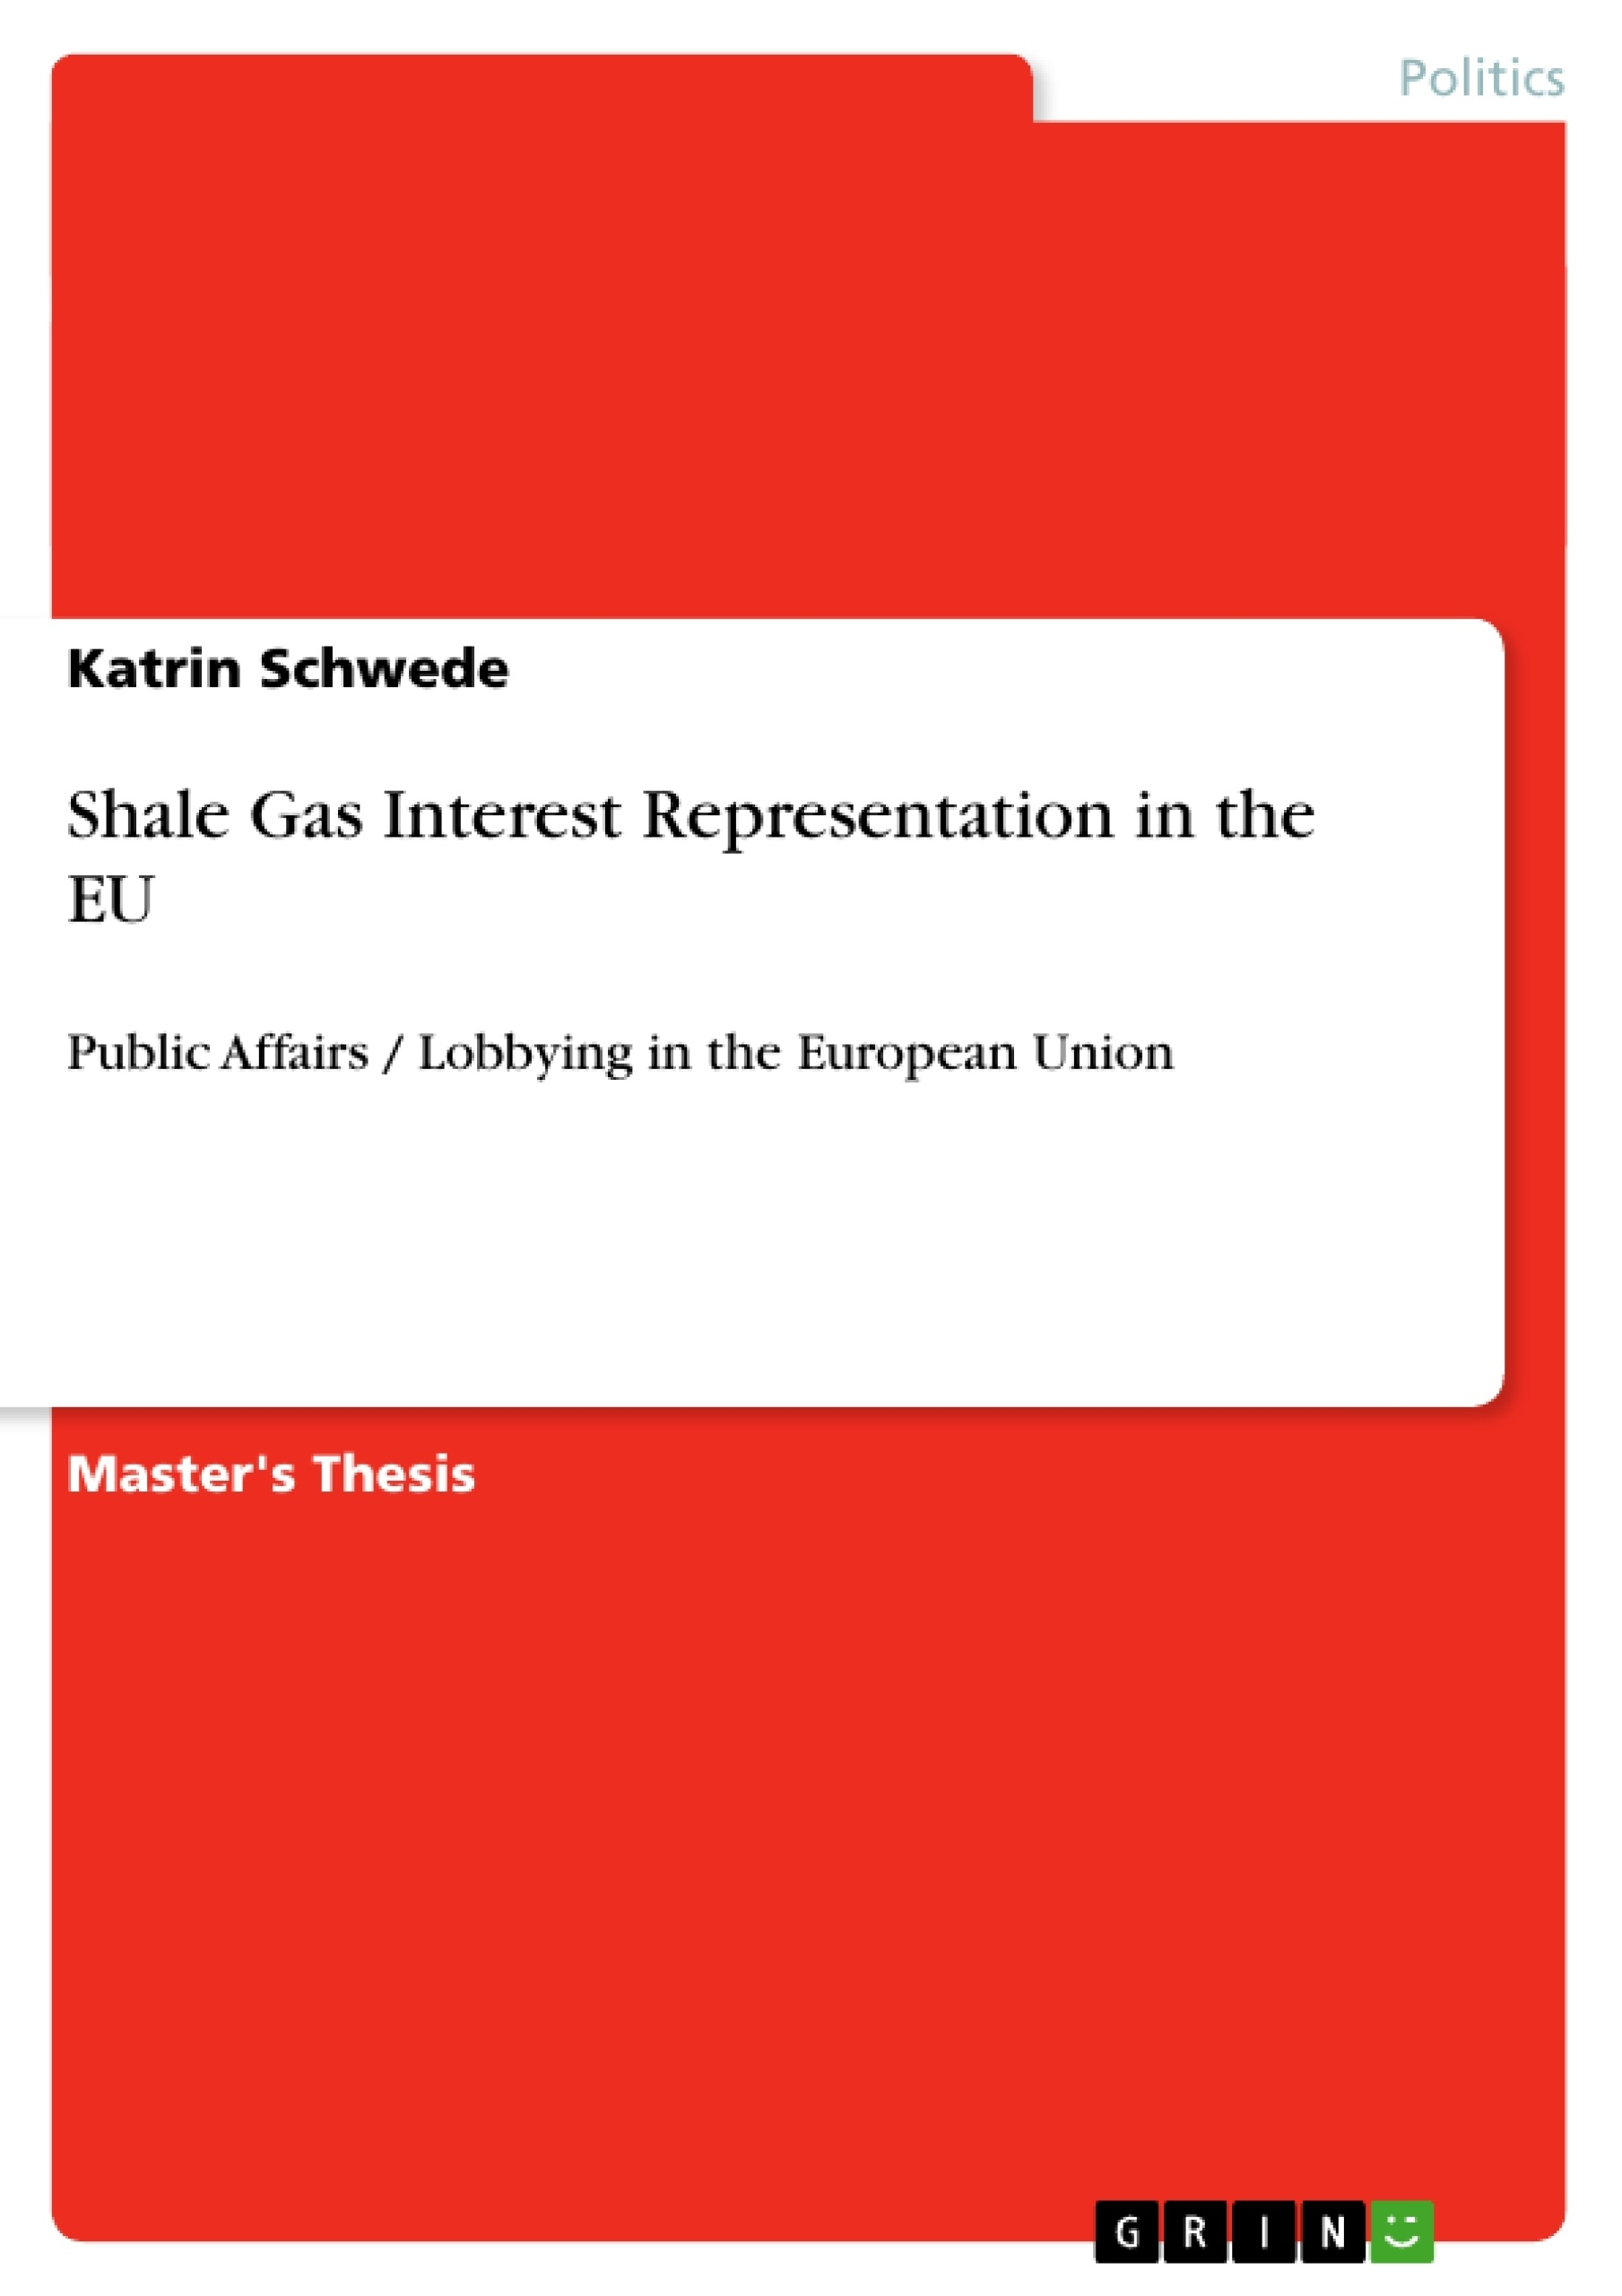 Title: Shale Gas Interest Representation in the EU